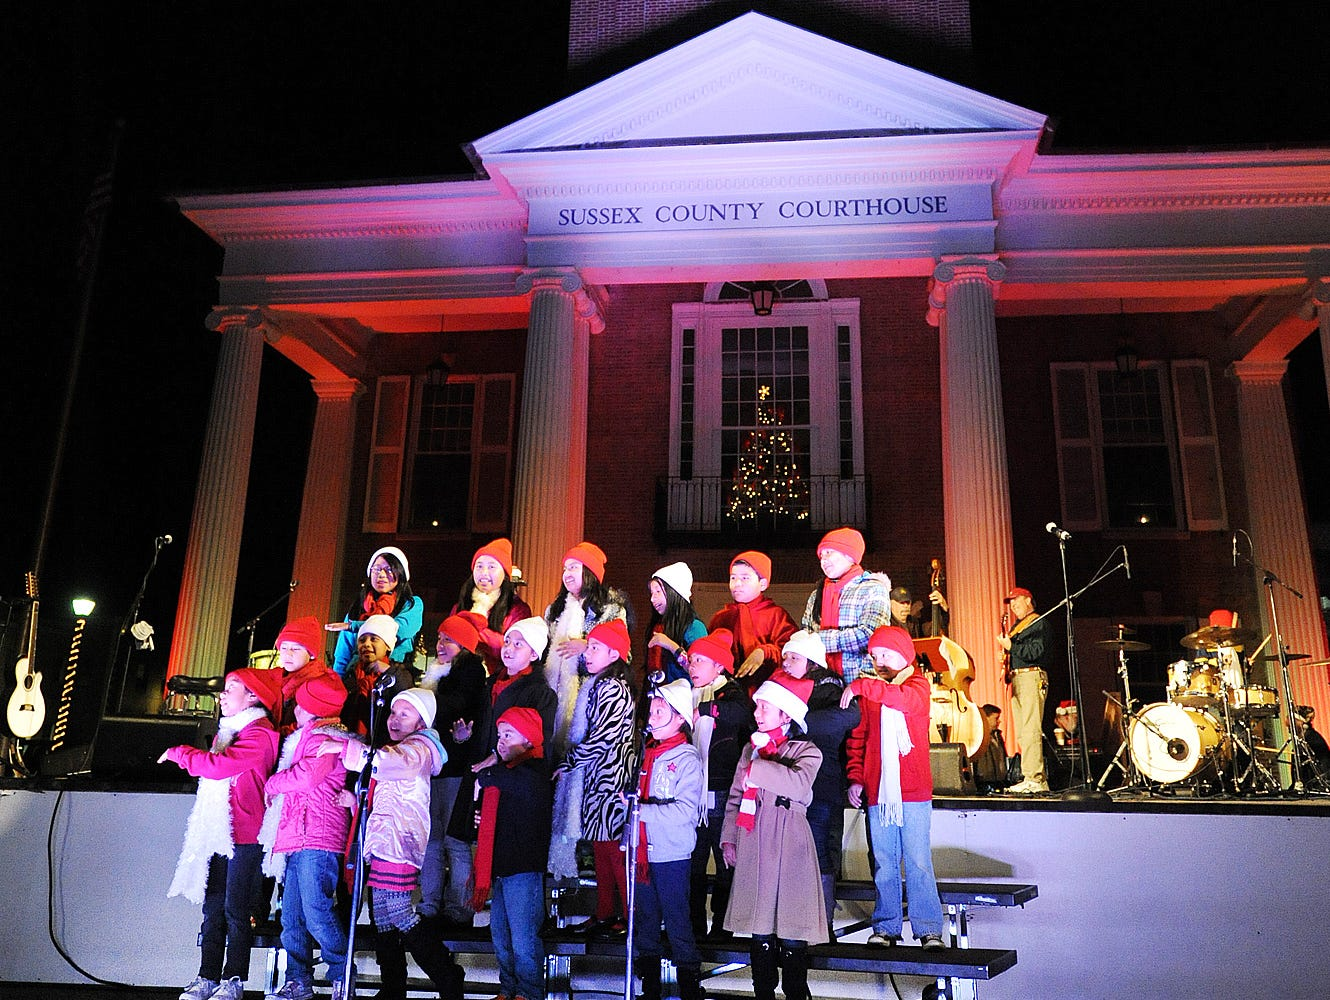 Sing along at Caroling on the Square in Wilmington or on the Circle in Georgetown, seen here.  www.facebook.com/events/151533175469787